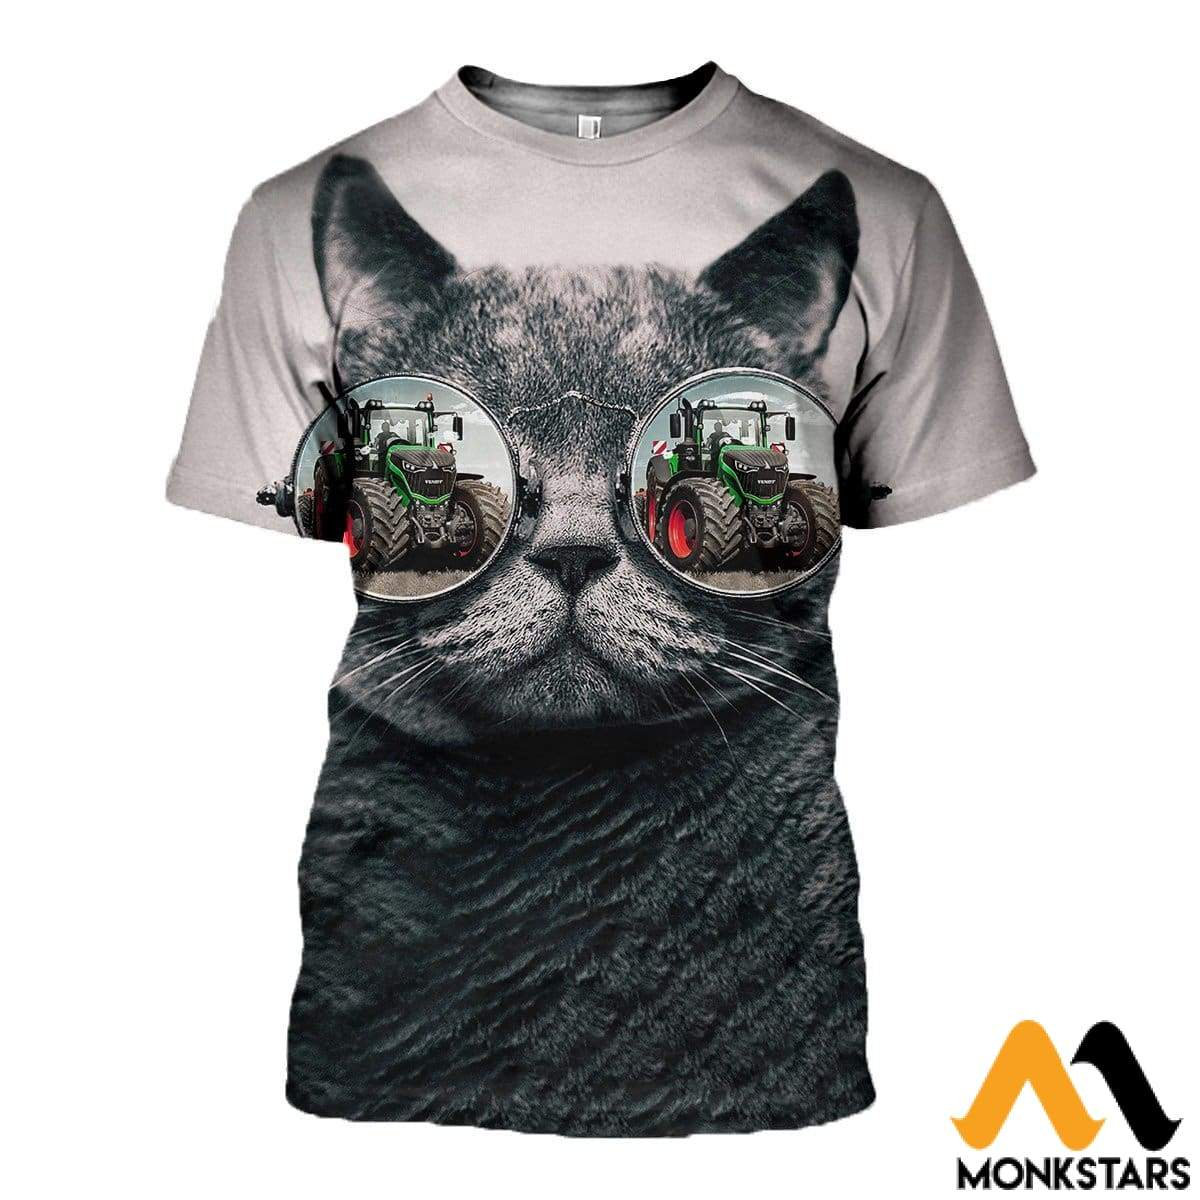 3D Printed Cool Cat Clothes T-Shirt / Xs